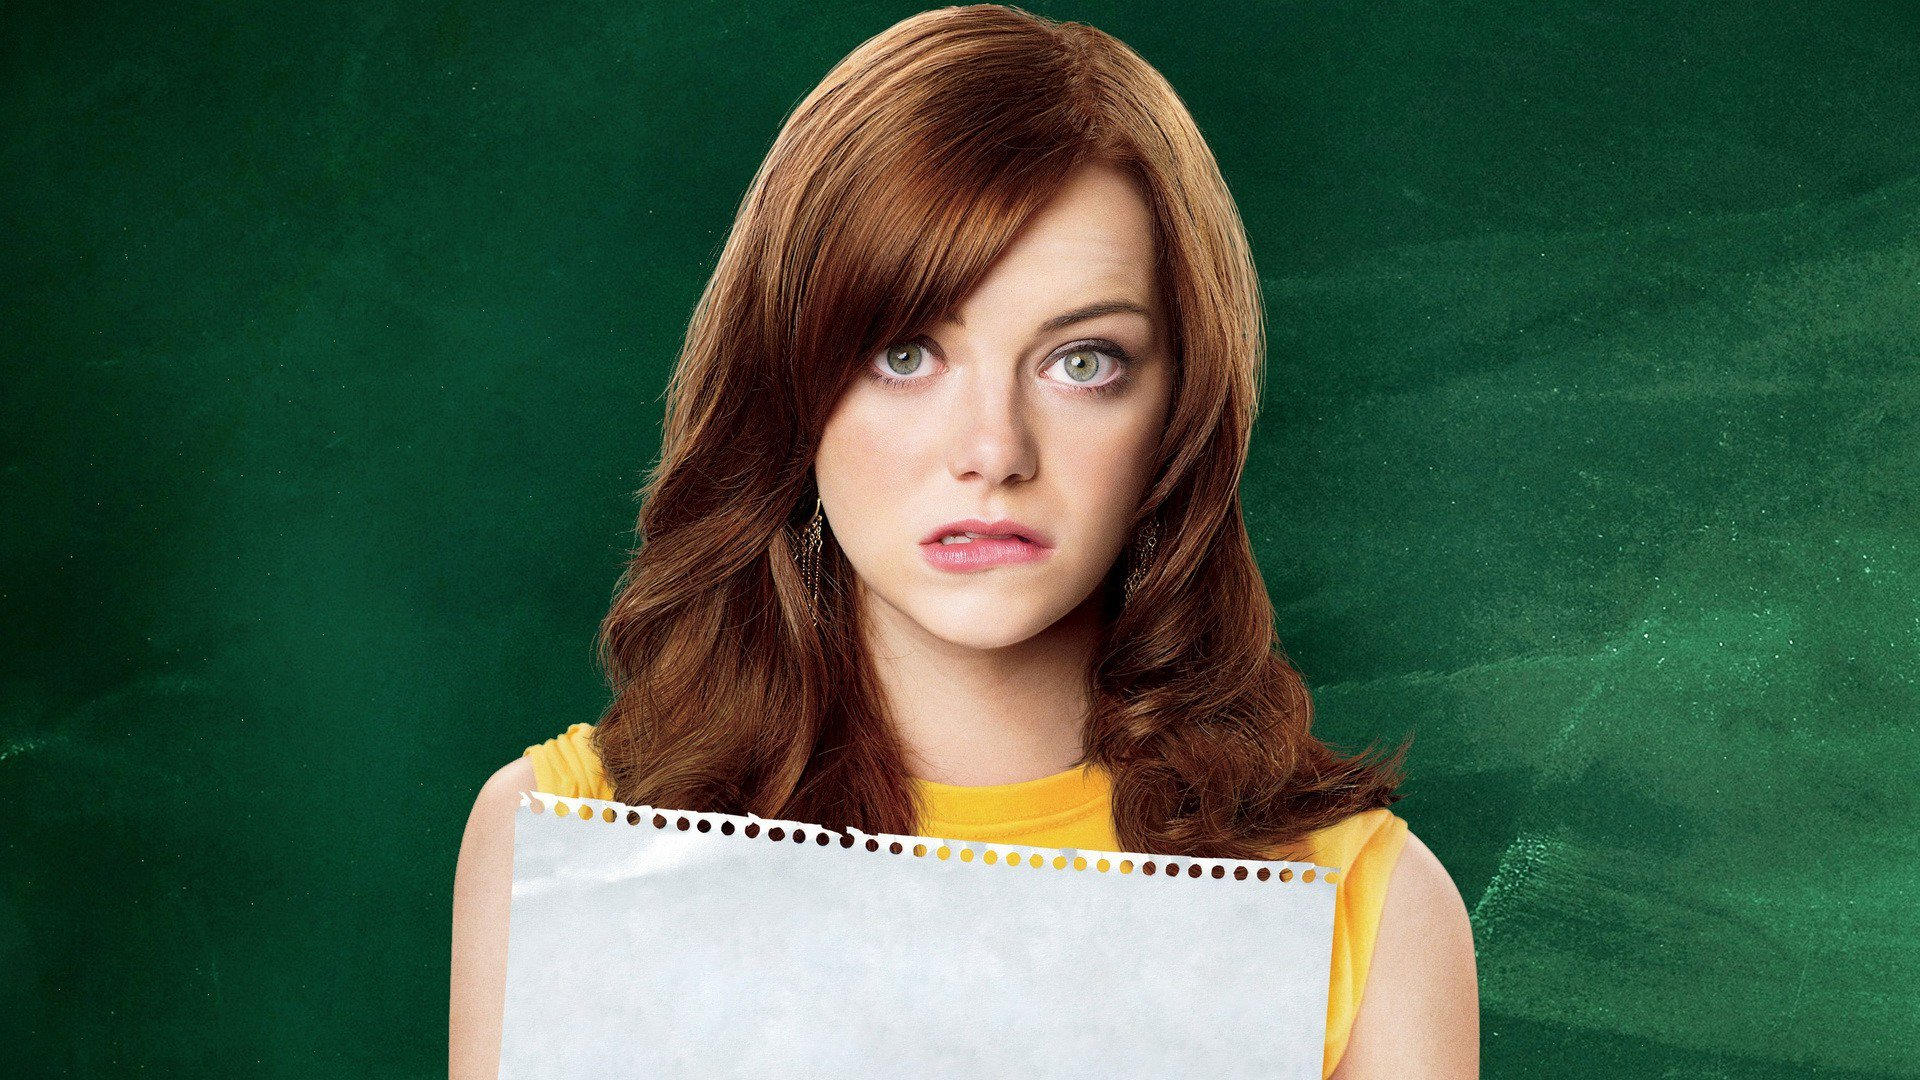 Olive Emma Stone Hd Celebrities 4k Wallpapers Images Backgrounds